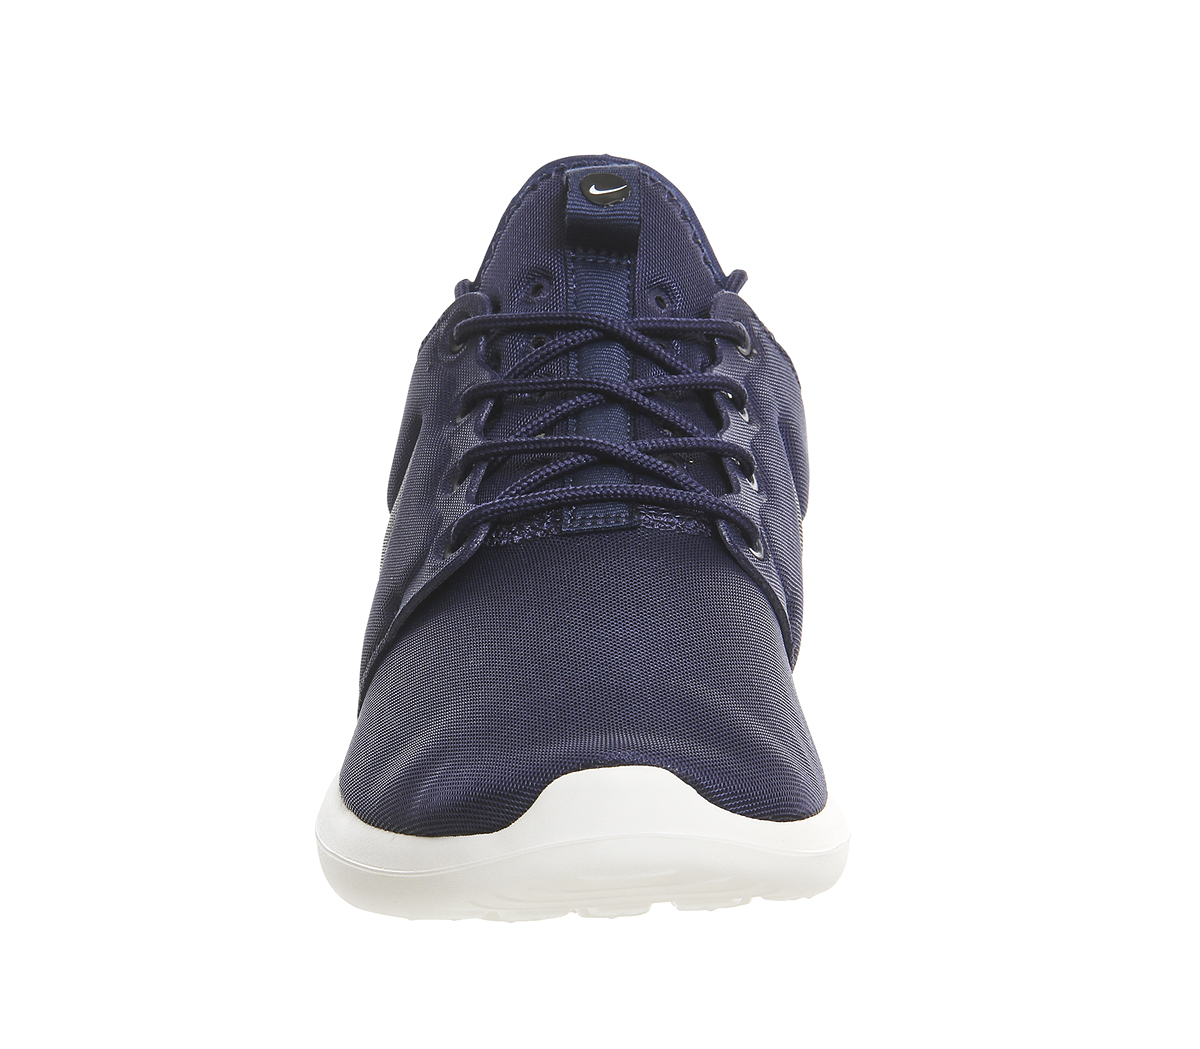 Nike Roshe Run Two Midnight Navy Sail - His trainers